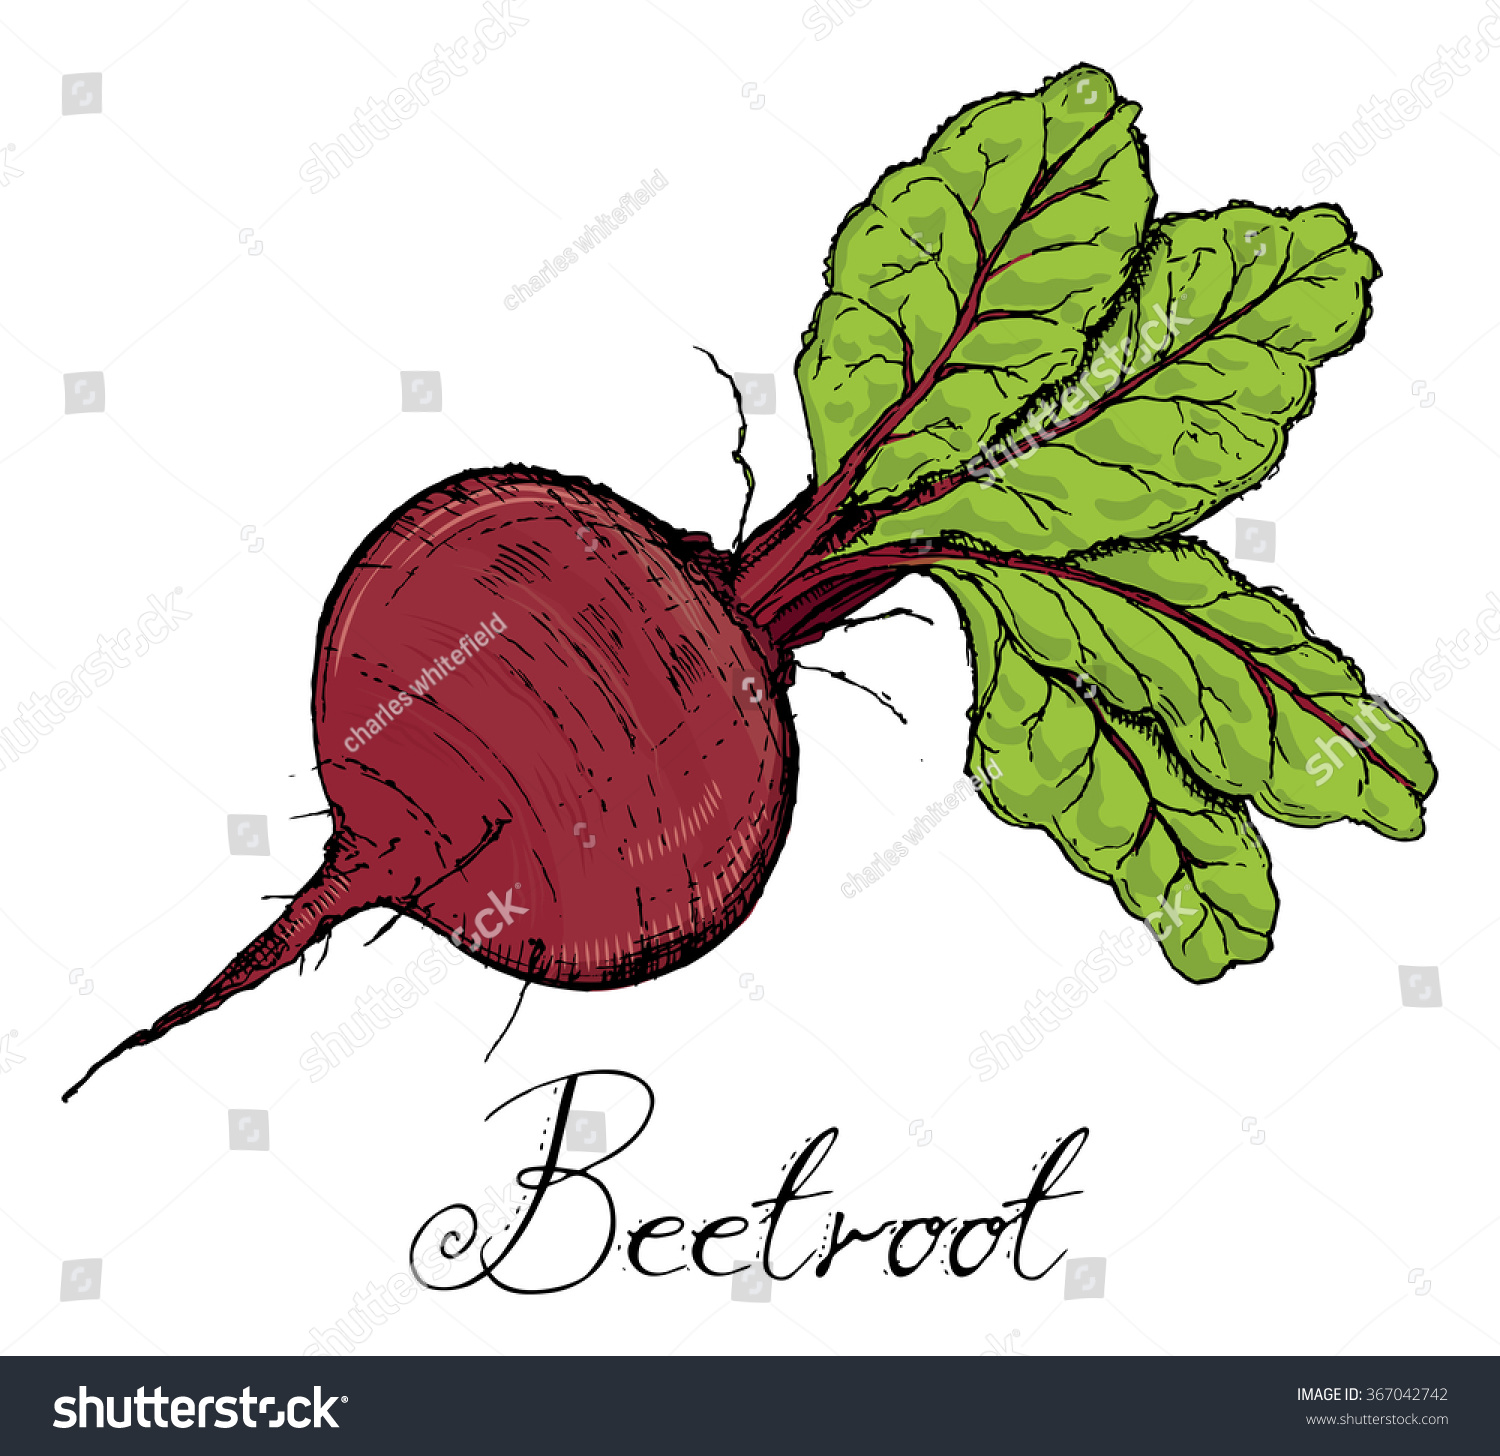 Beetroot Leaves Color Vintage Retro Woodcut Stock Vector ...